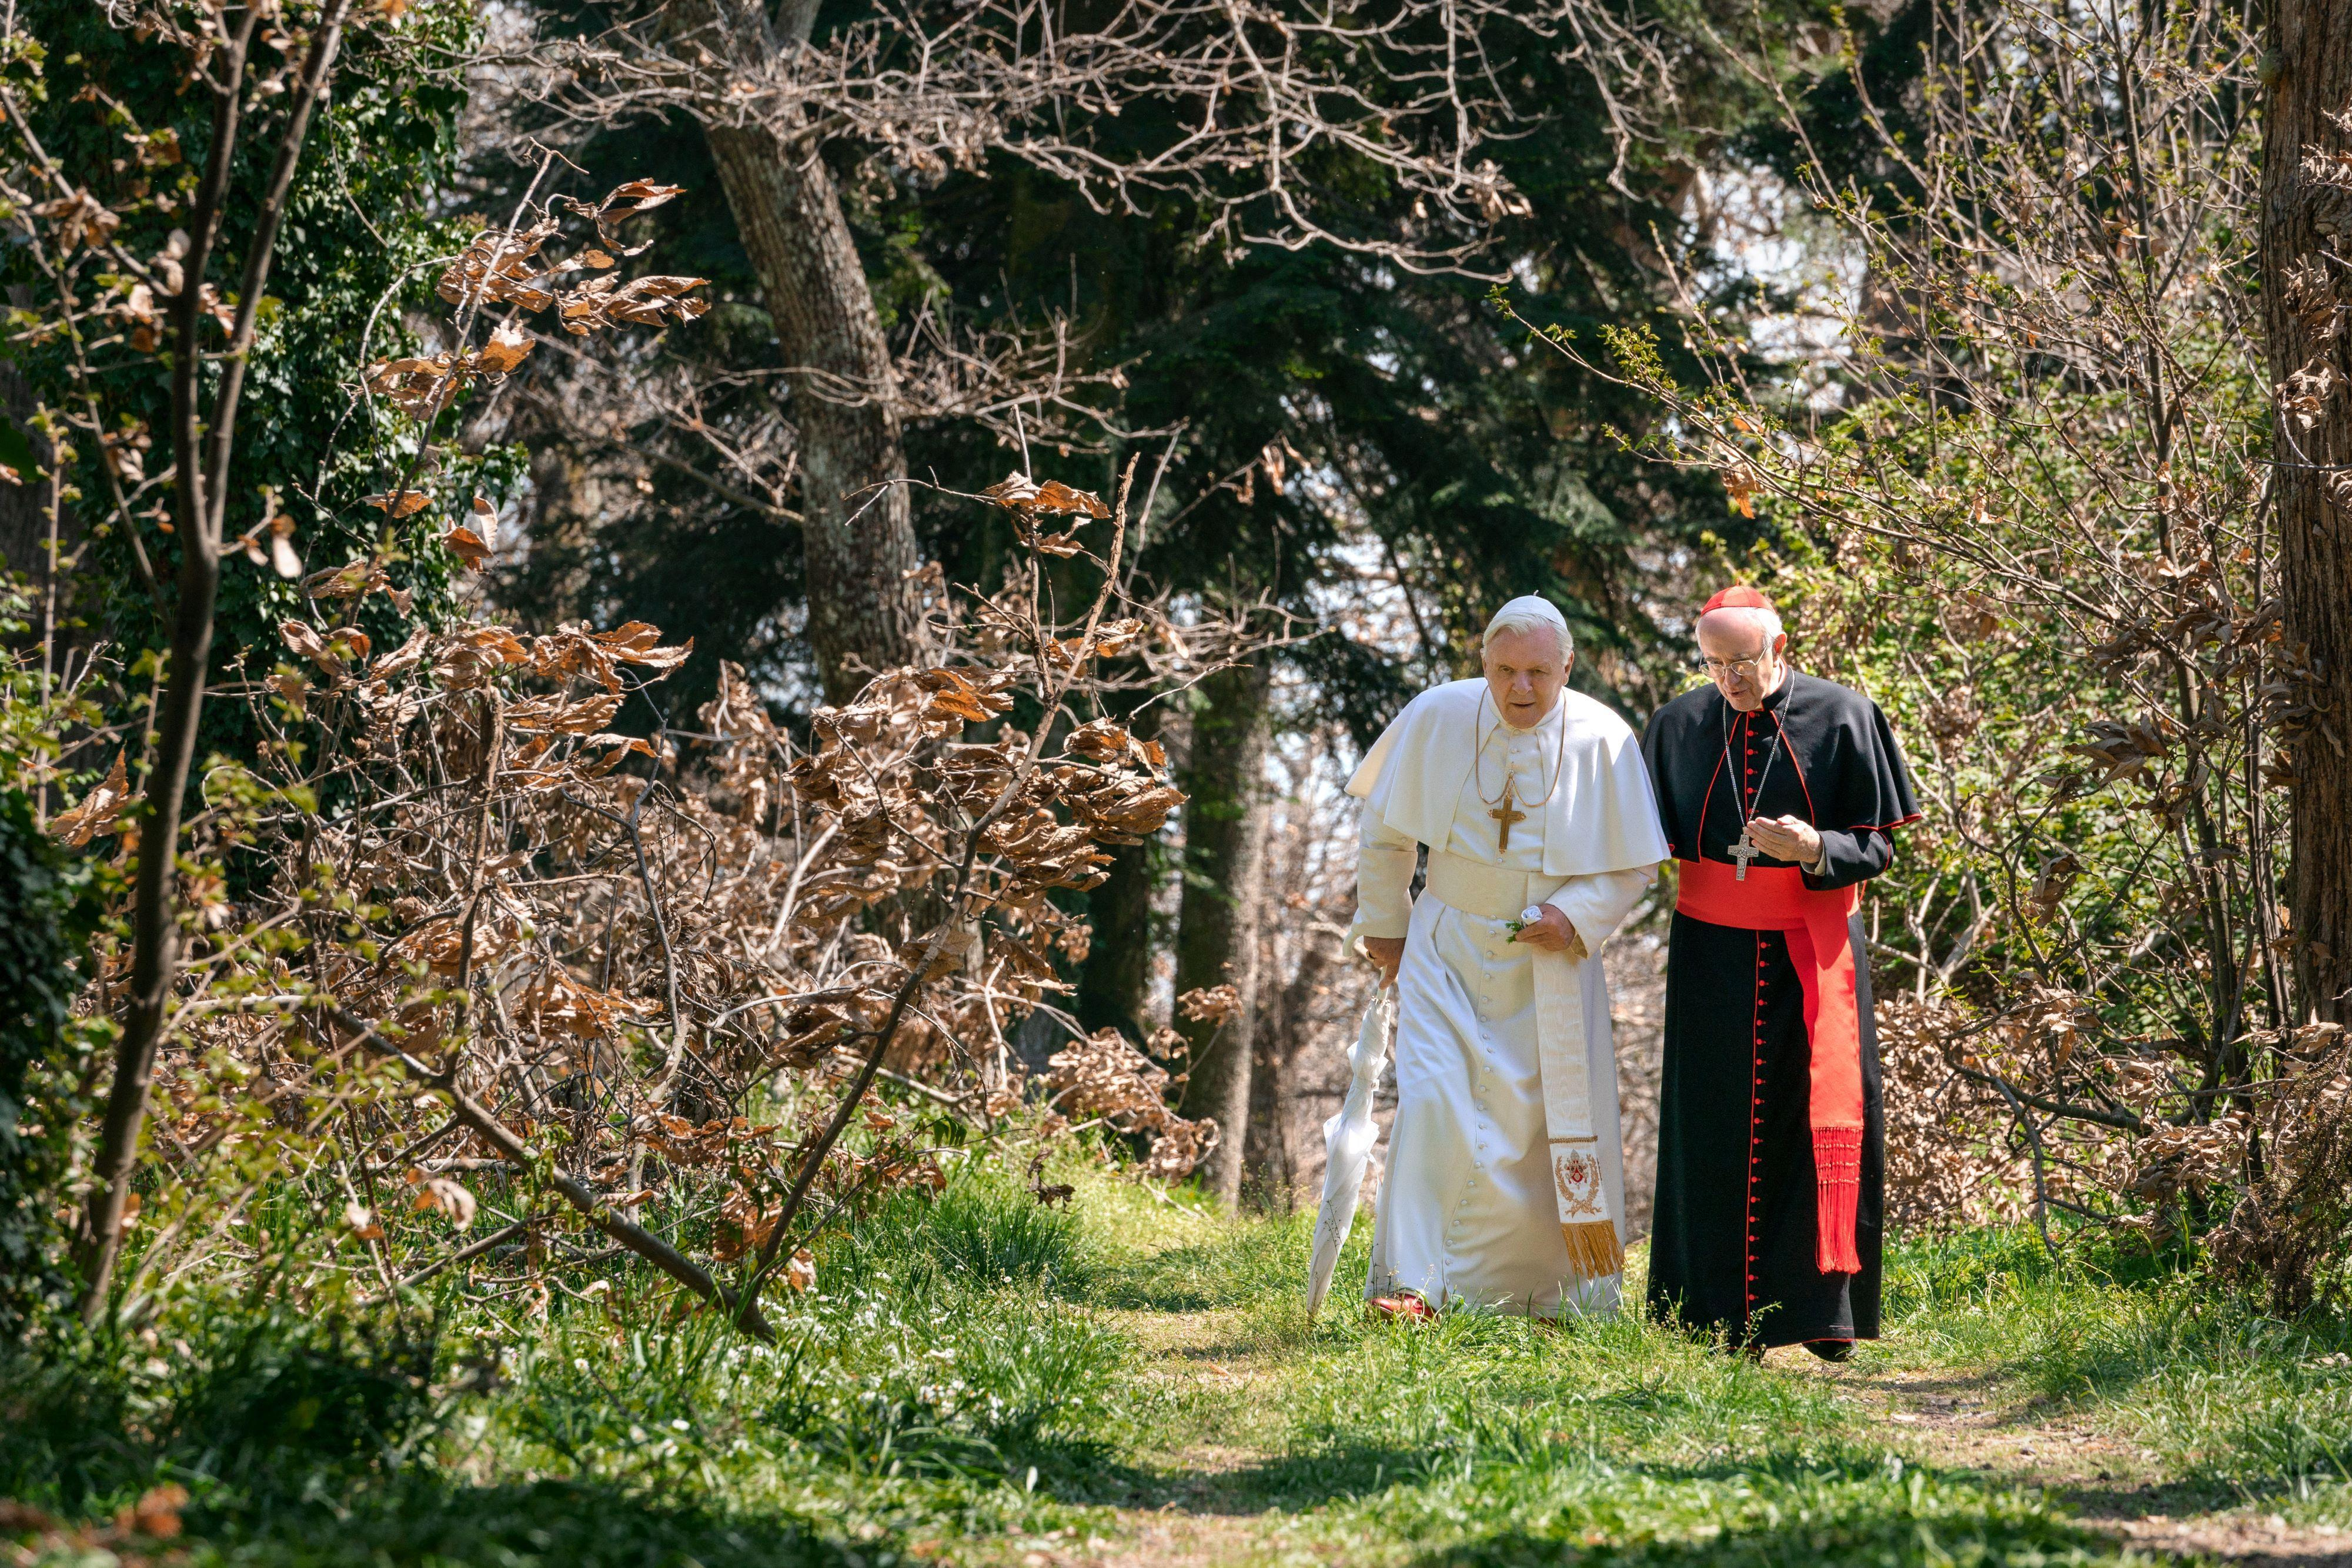 Movie review: 'The Two Popes' will give Oscar voters two